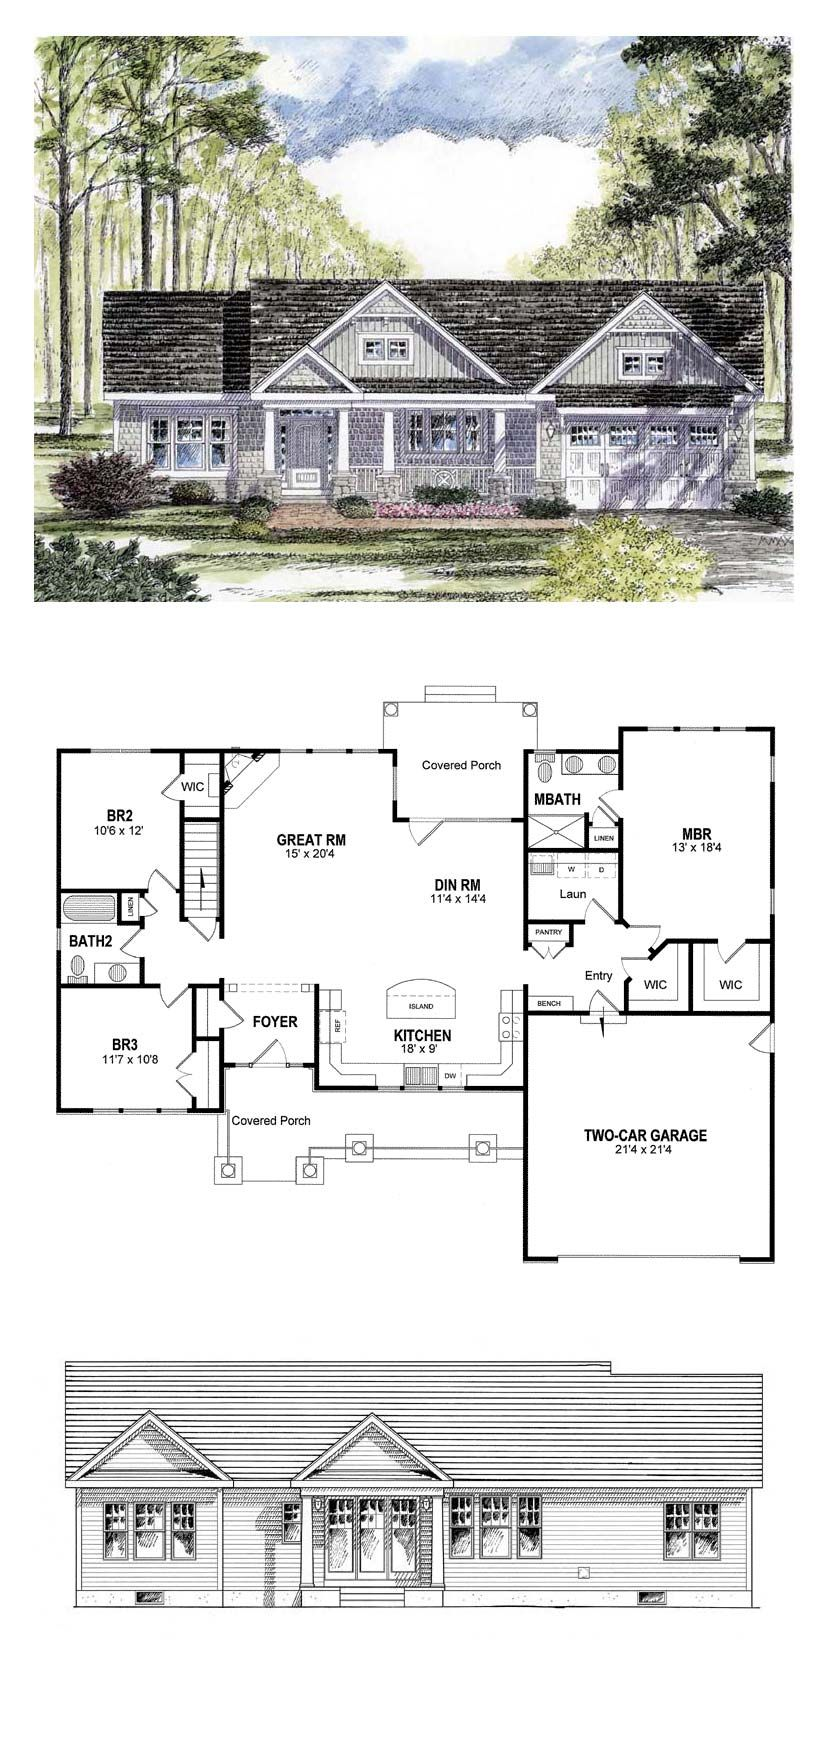 Ranchhome country craftsman details in this design with an open floor plan one of our most popular house